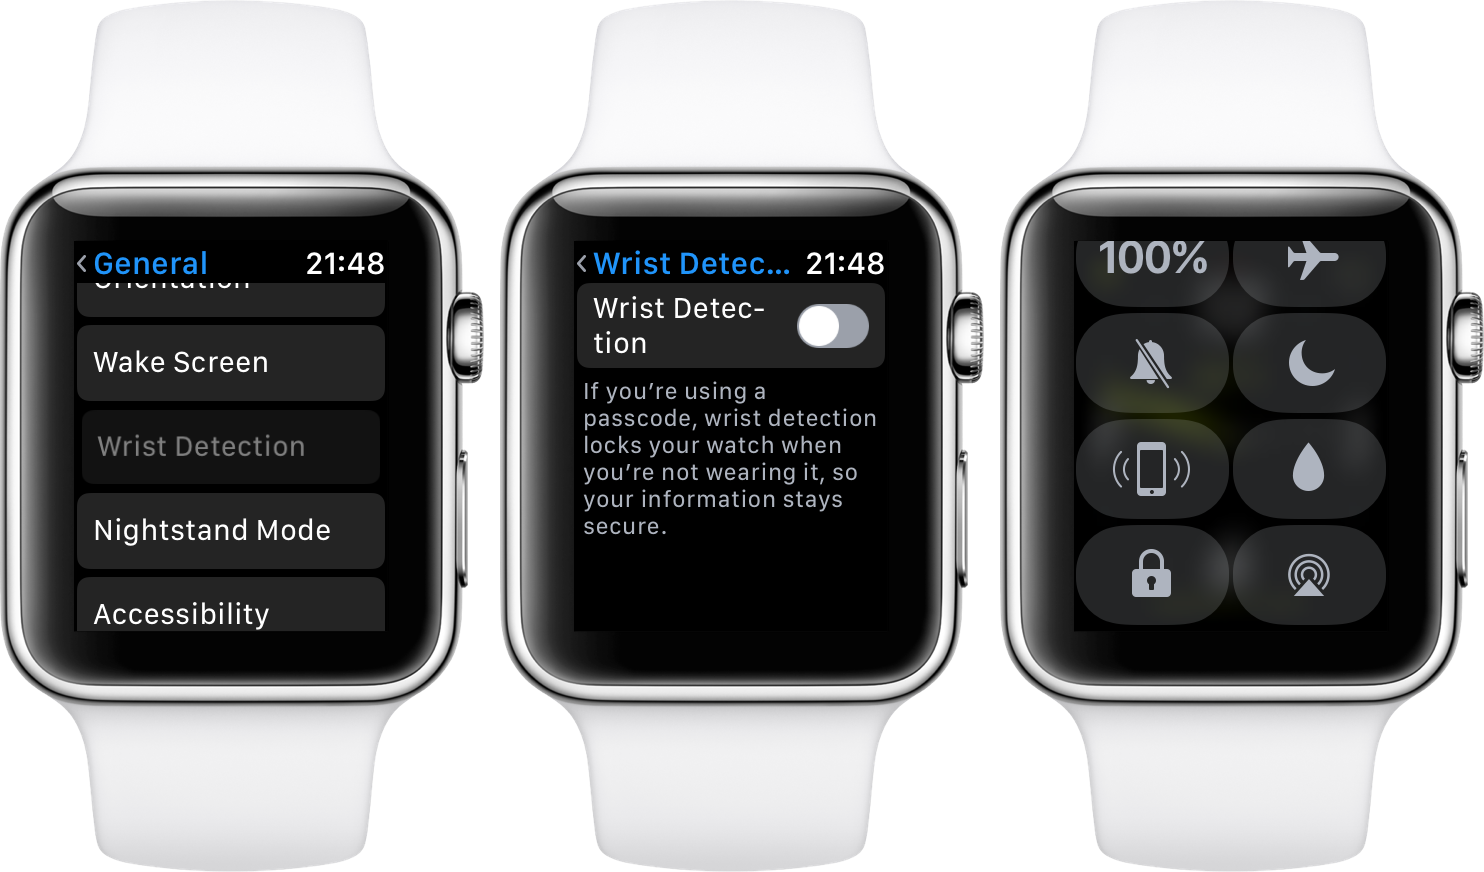 watchOS 3.1.1 Wrist Detection off Control Center Apple Watch screenshot 001